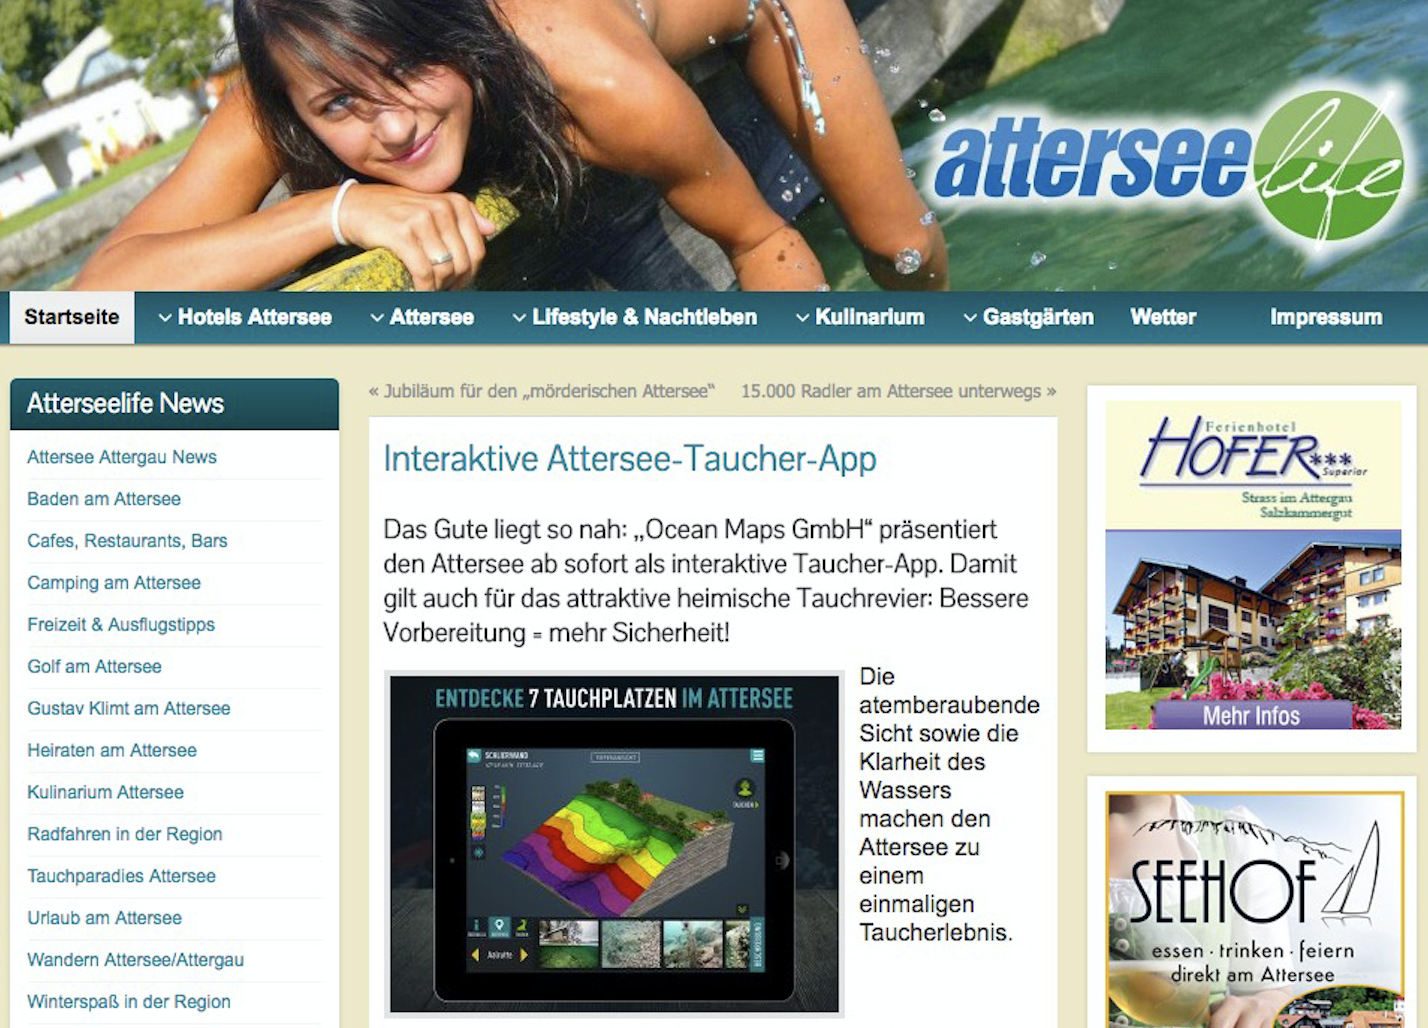 attersee-life Ocean-Maps Attersee-Taucher-App